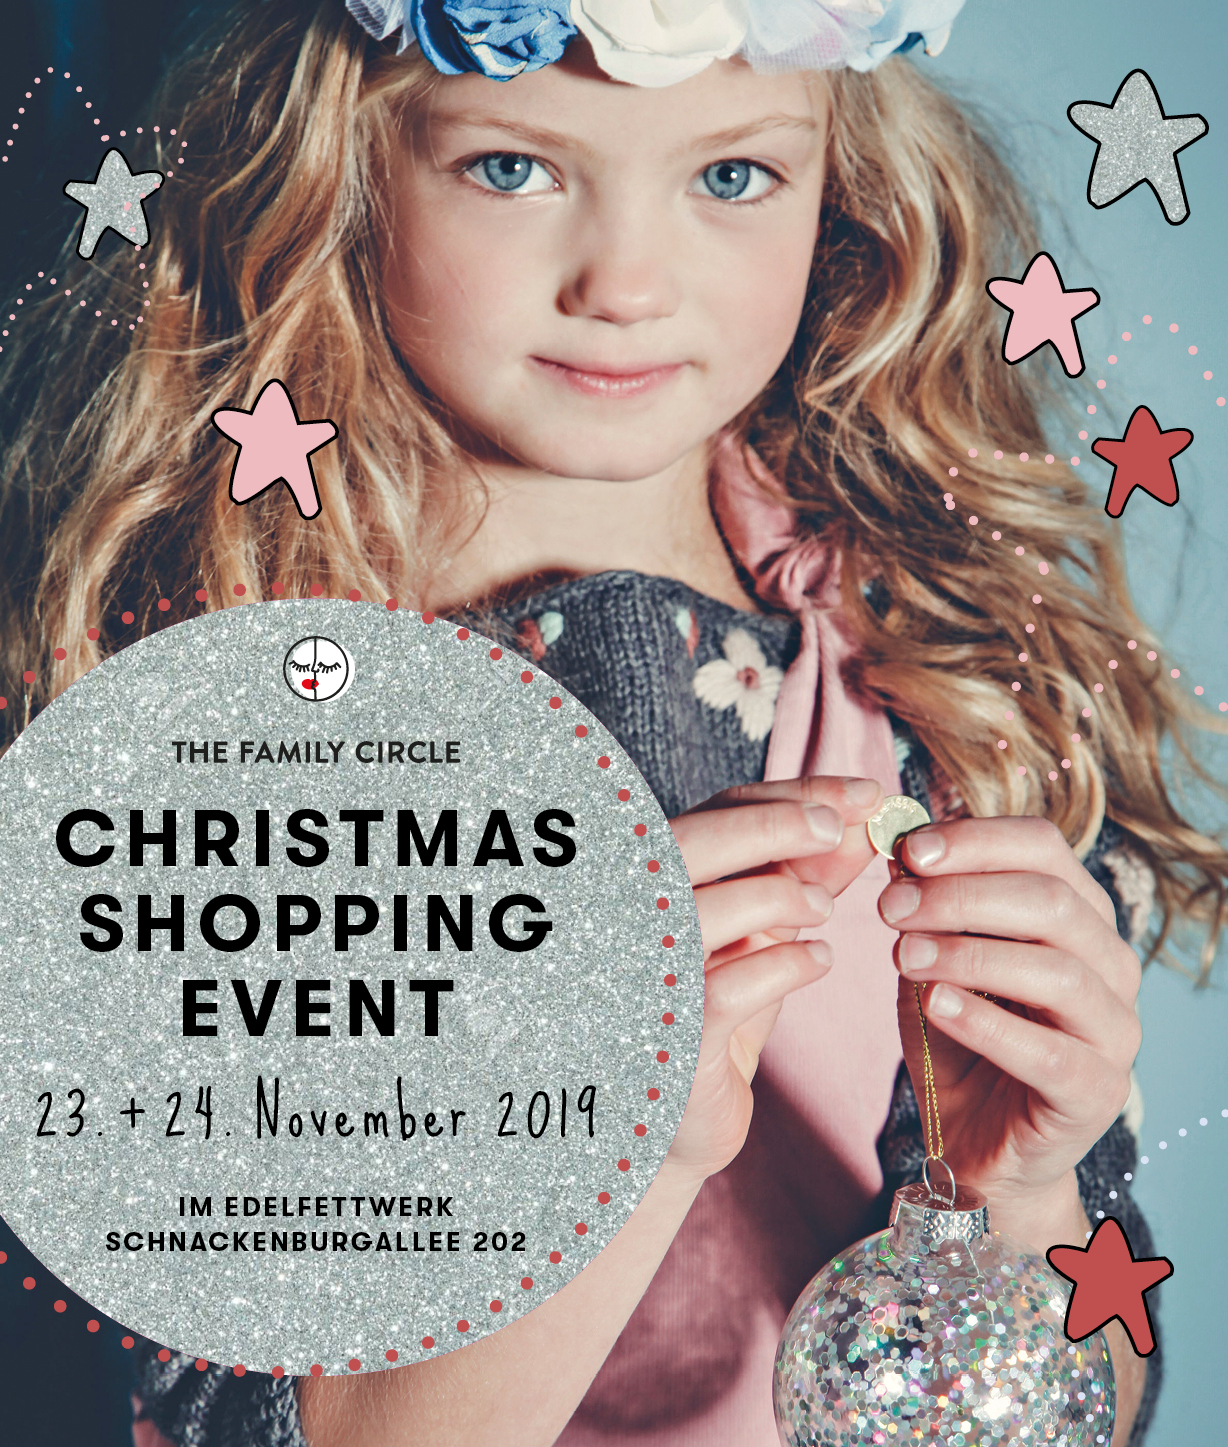 Event Tipp: The Family Circle goes Christmas